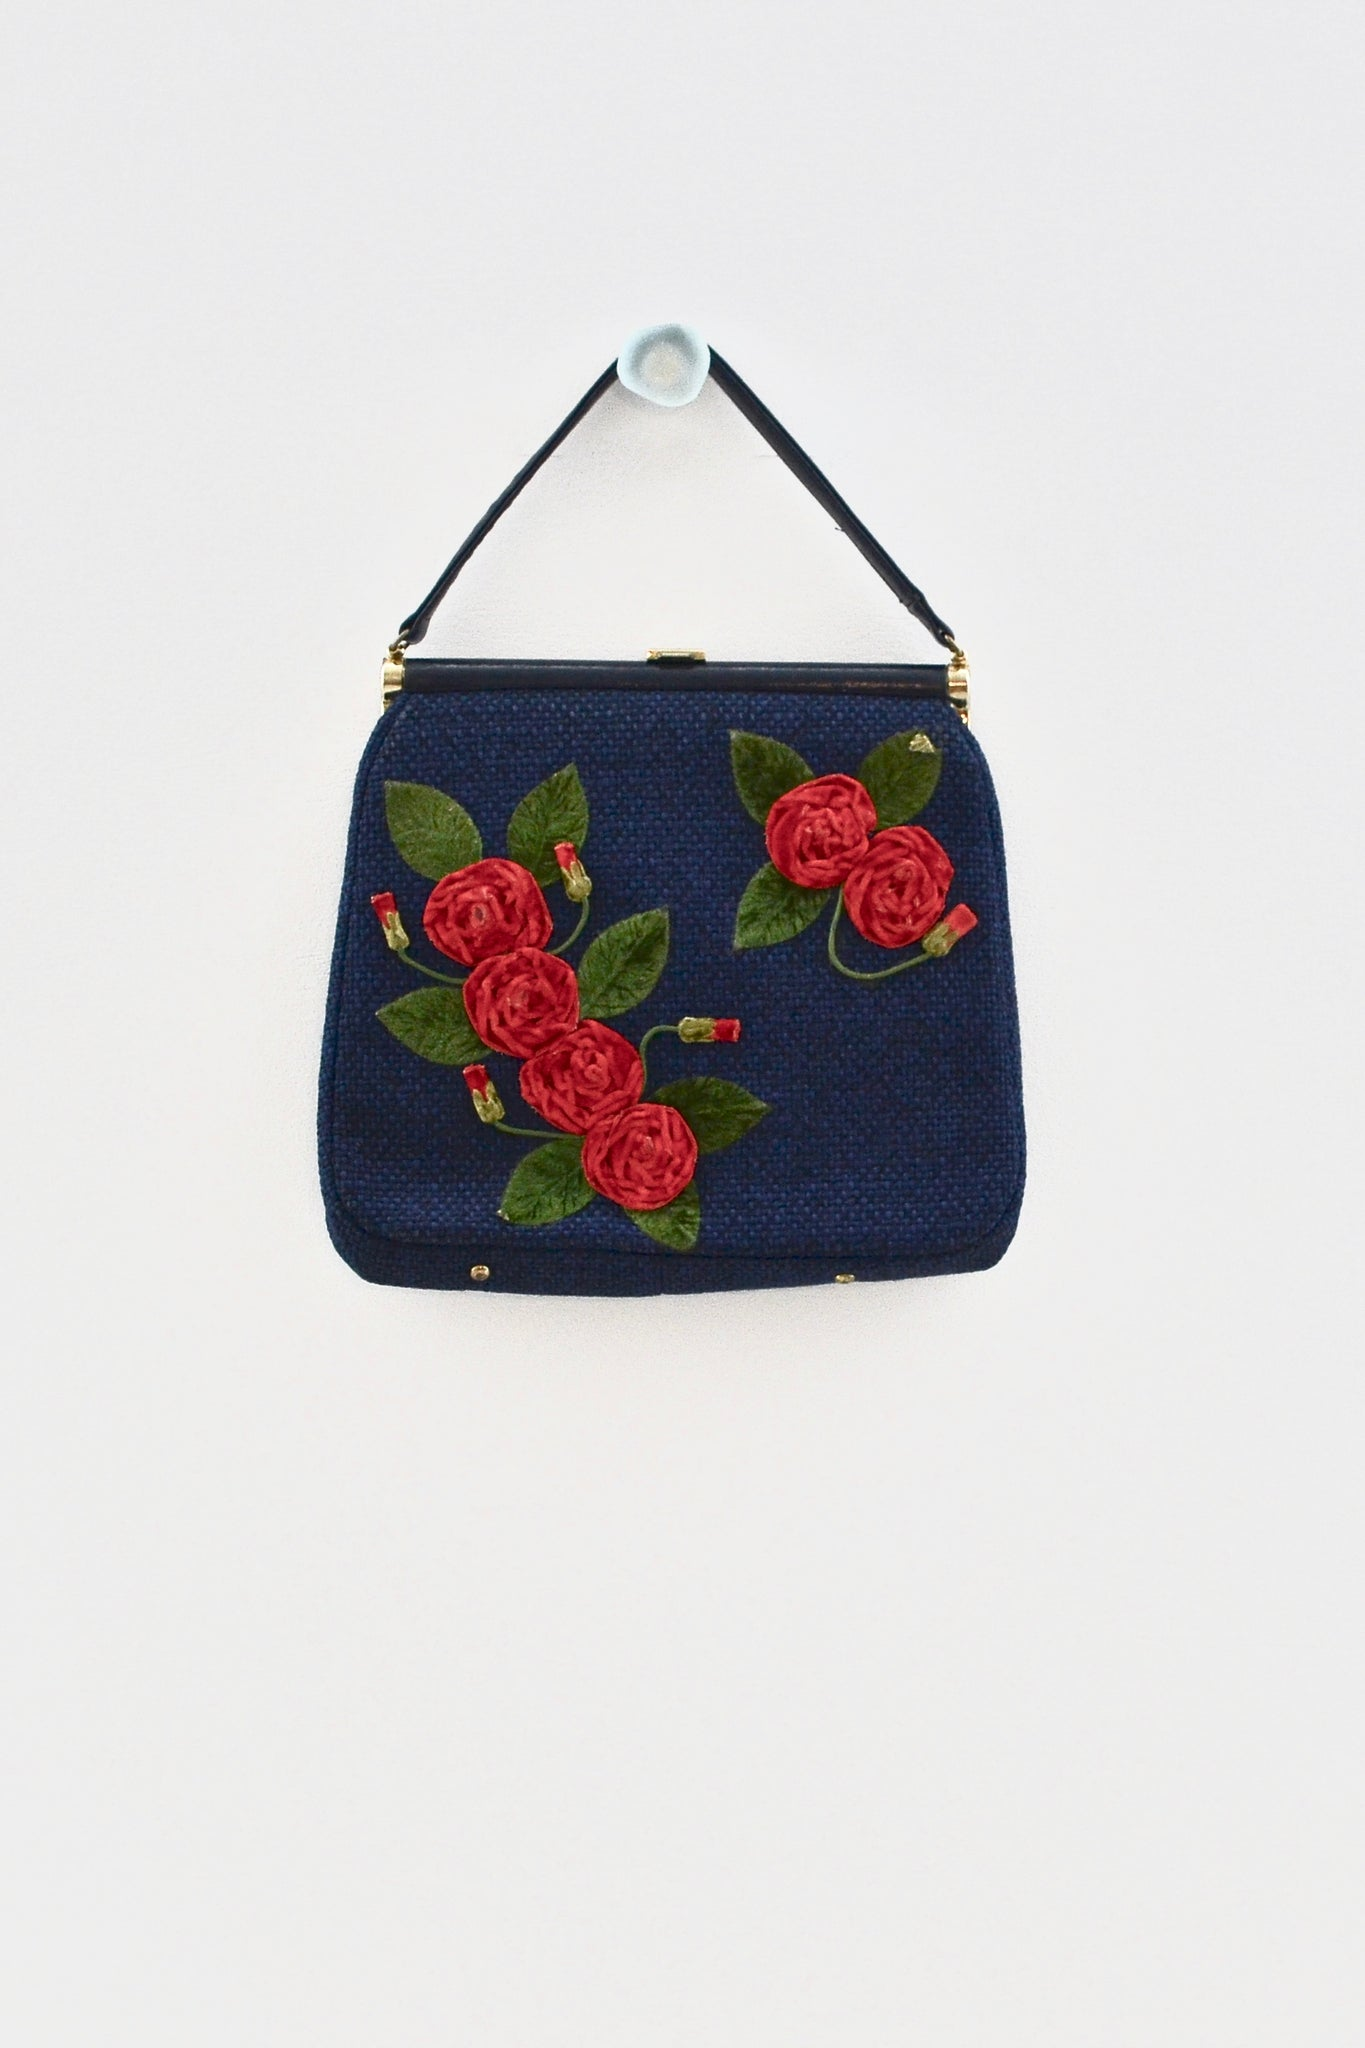 Rose Tapestry Purse - Pickled Vintage